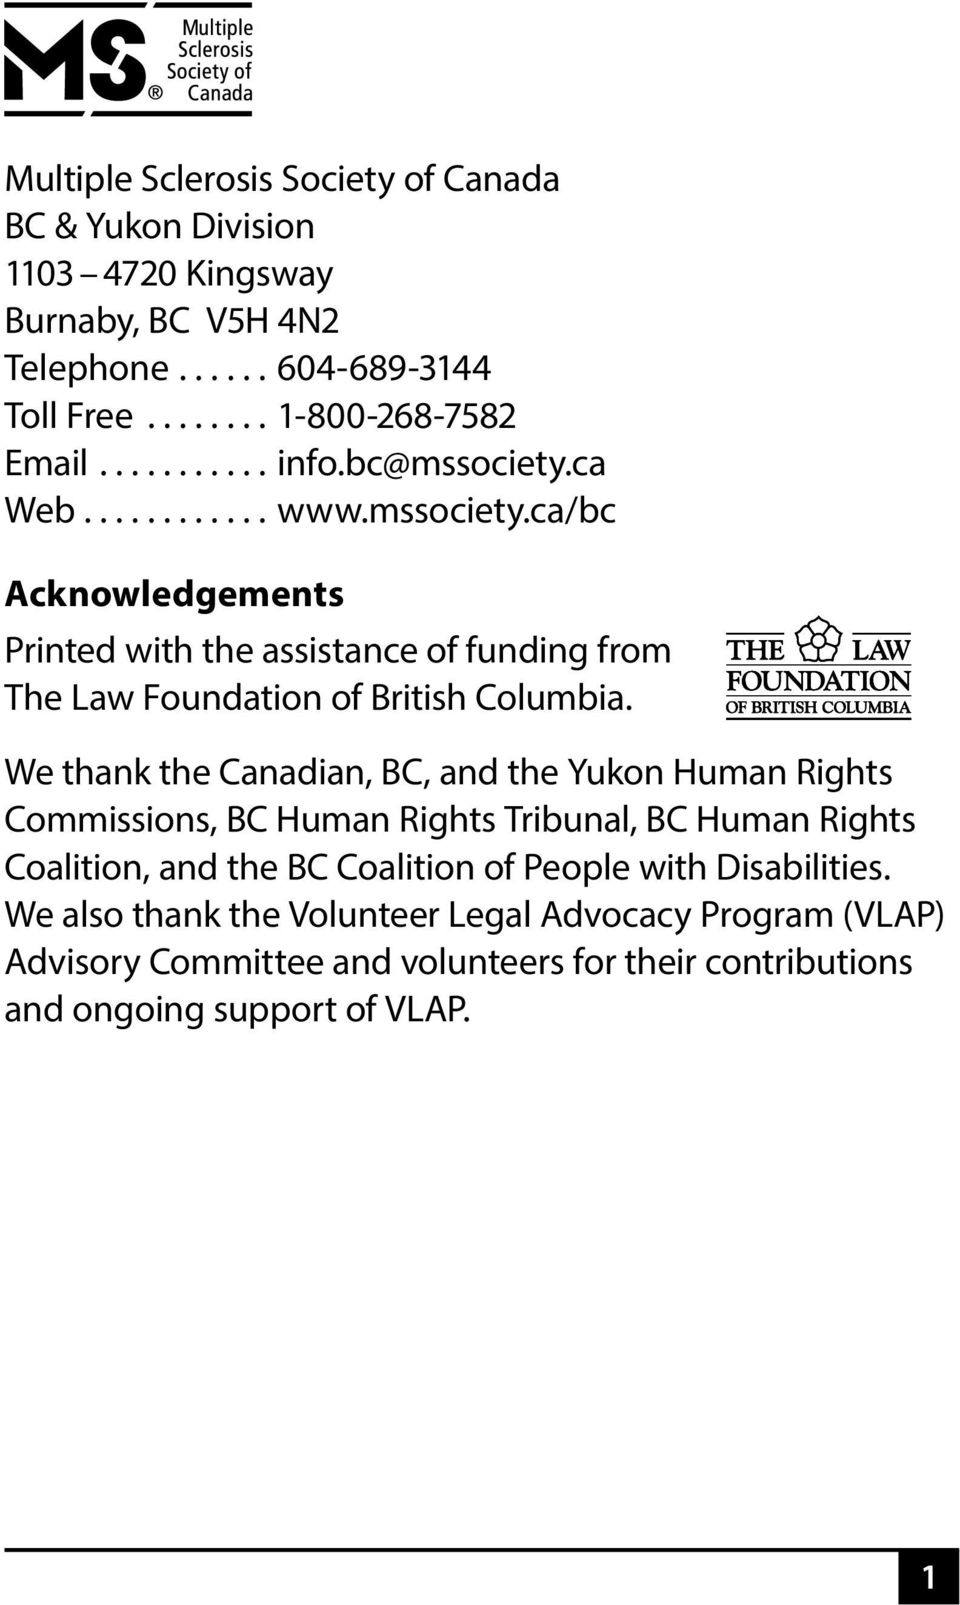 We thank the Canadian, BC, and the Yukon Human Rights Commissions, BC Human Rights Tribunal, BC Human Rights Coalition, and the BC Coalition of People with